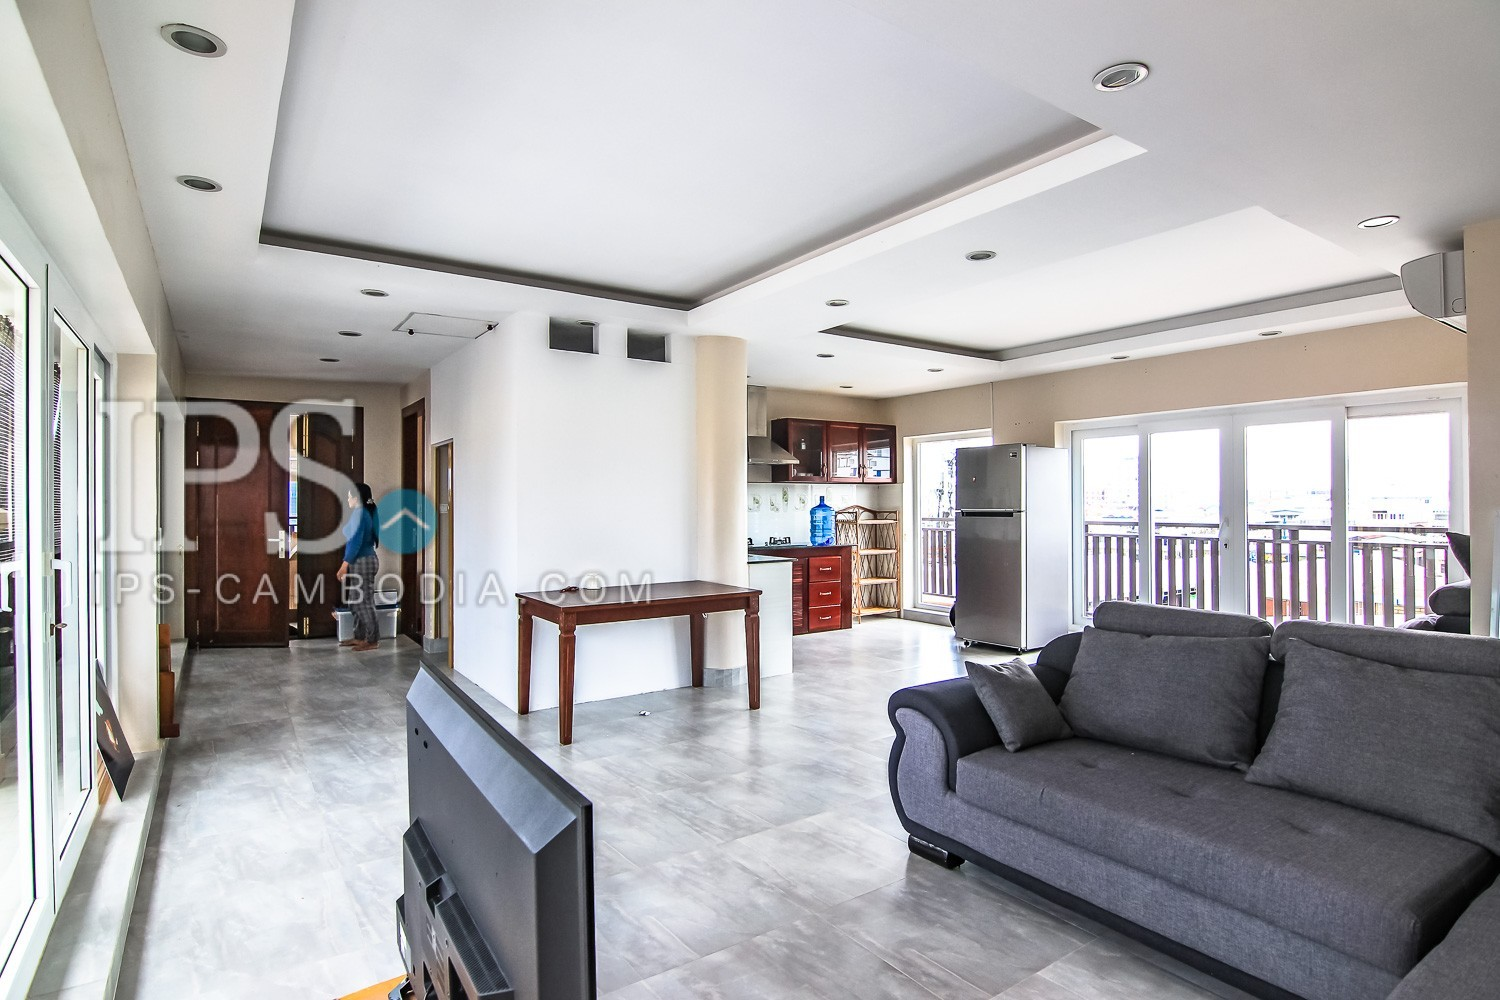 3 Bedrooms Apartment For Rent - Toul Tumpong,Phnom Penh